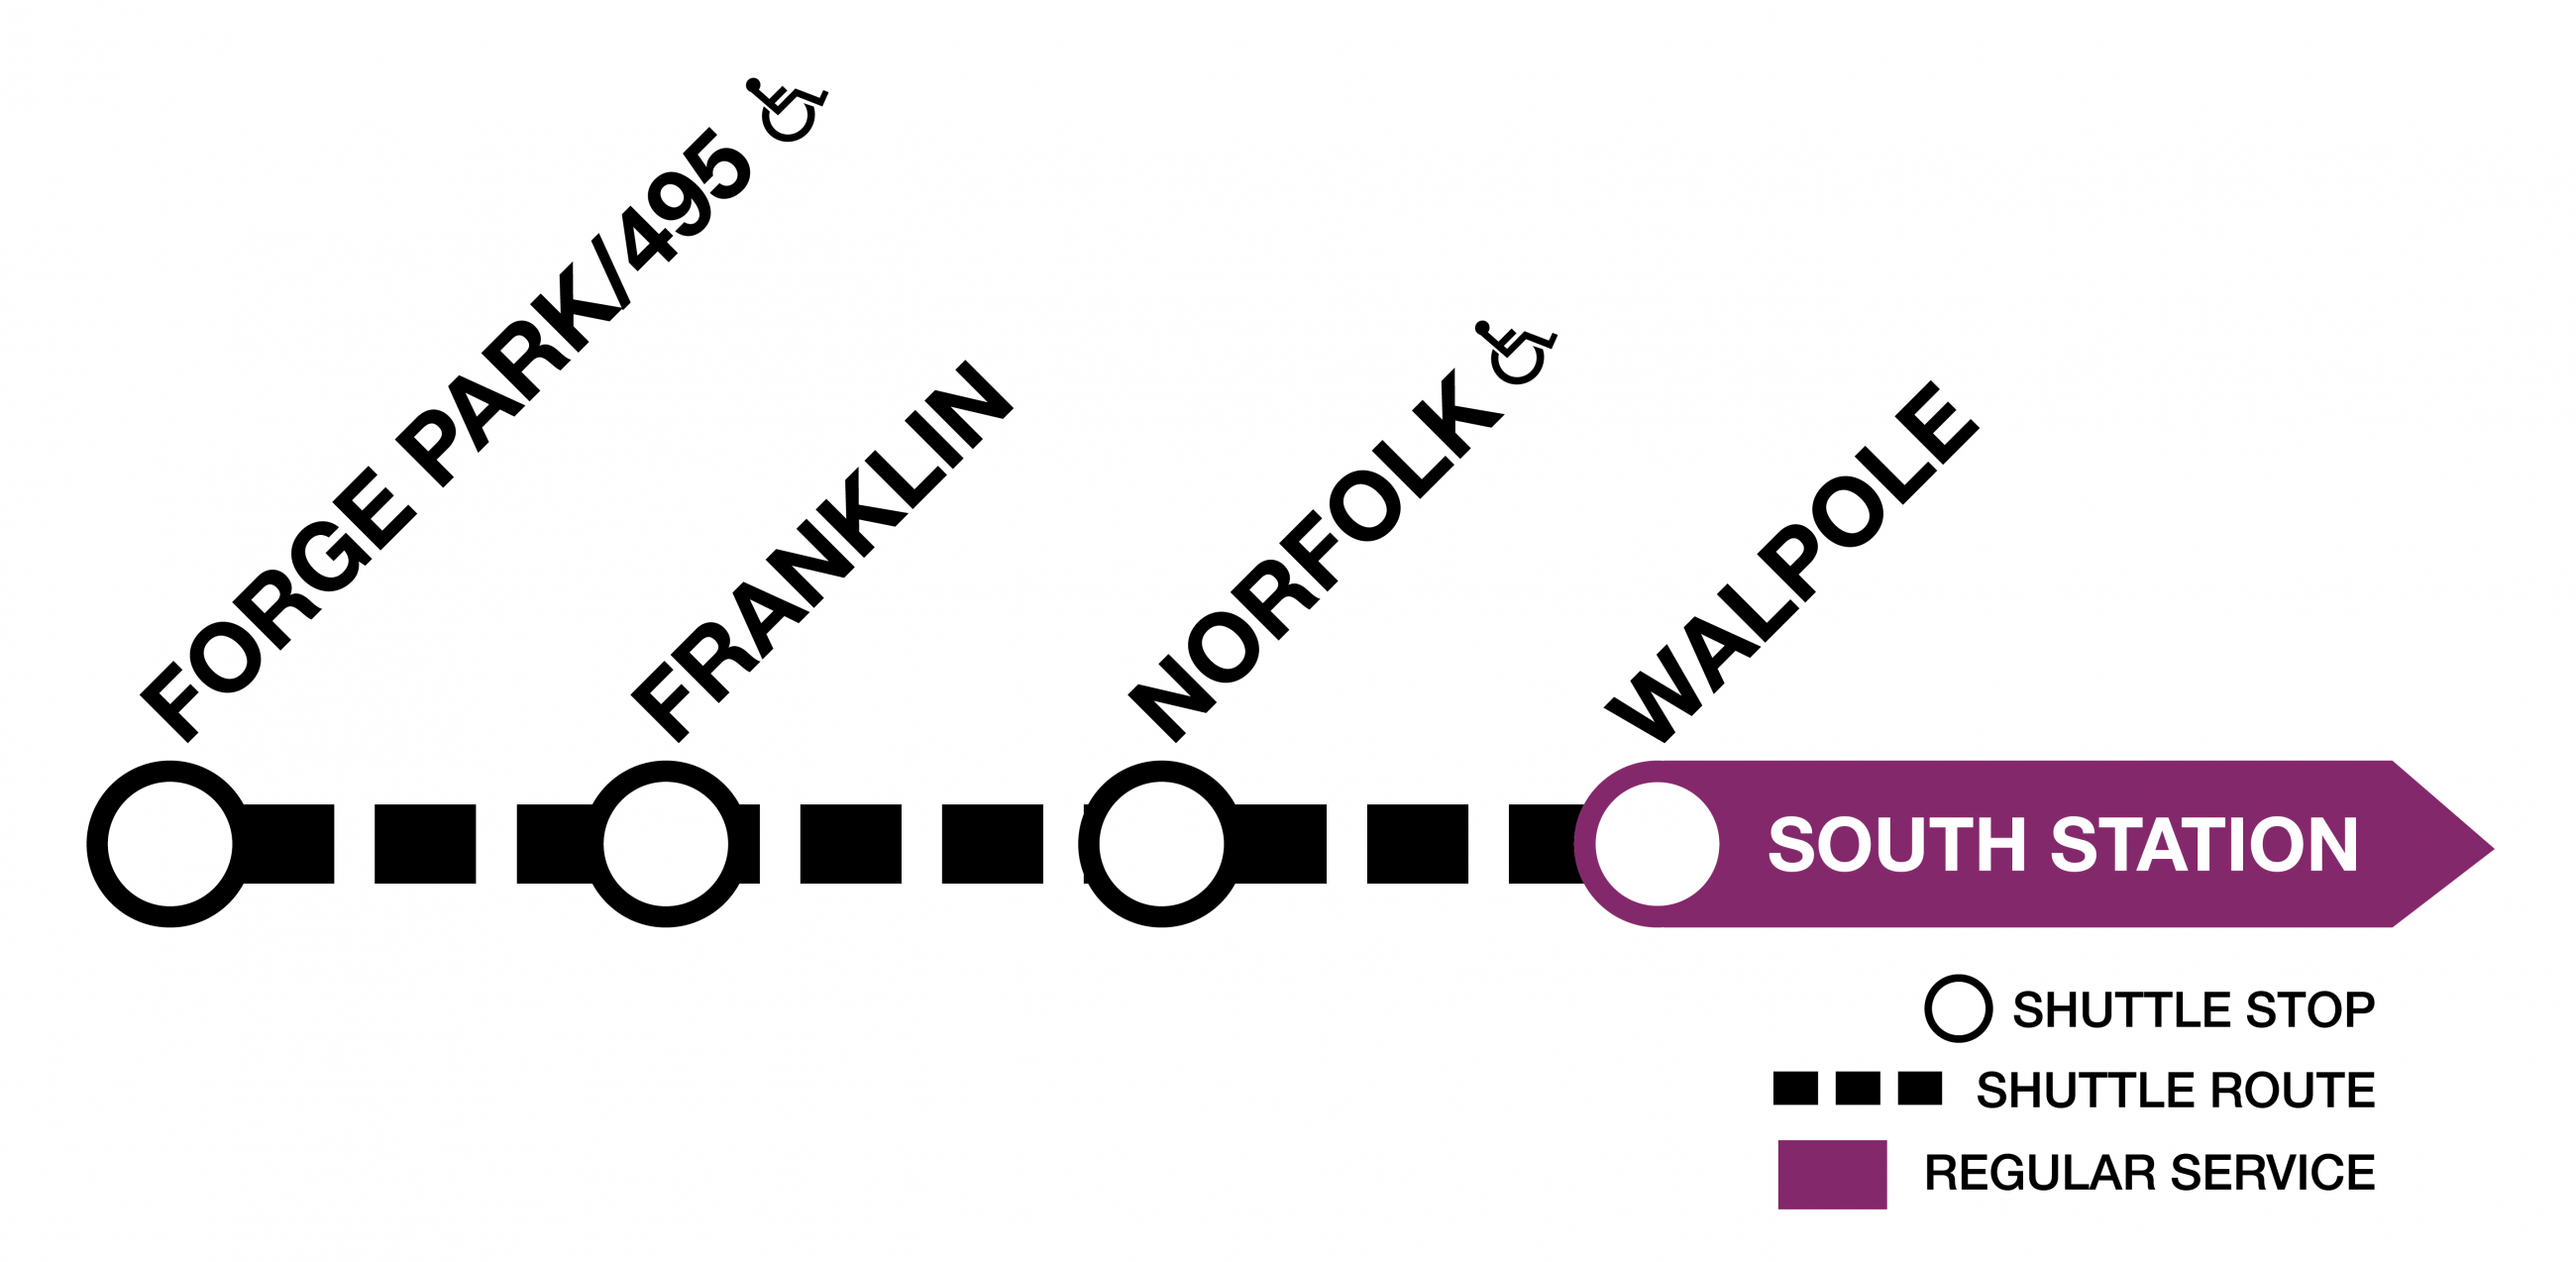 Rockport Line diagram, showing shuttles running between Forge Park/495 and Walpole.